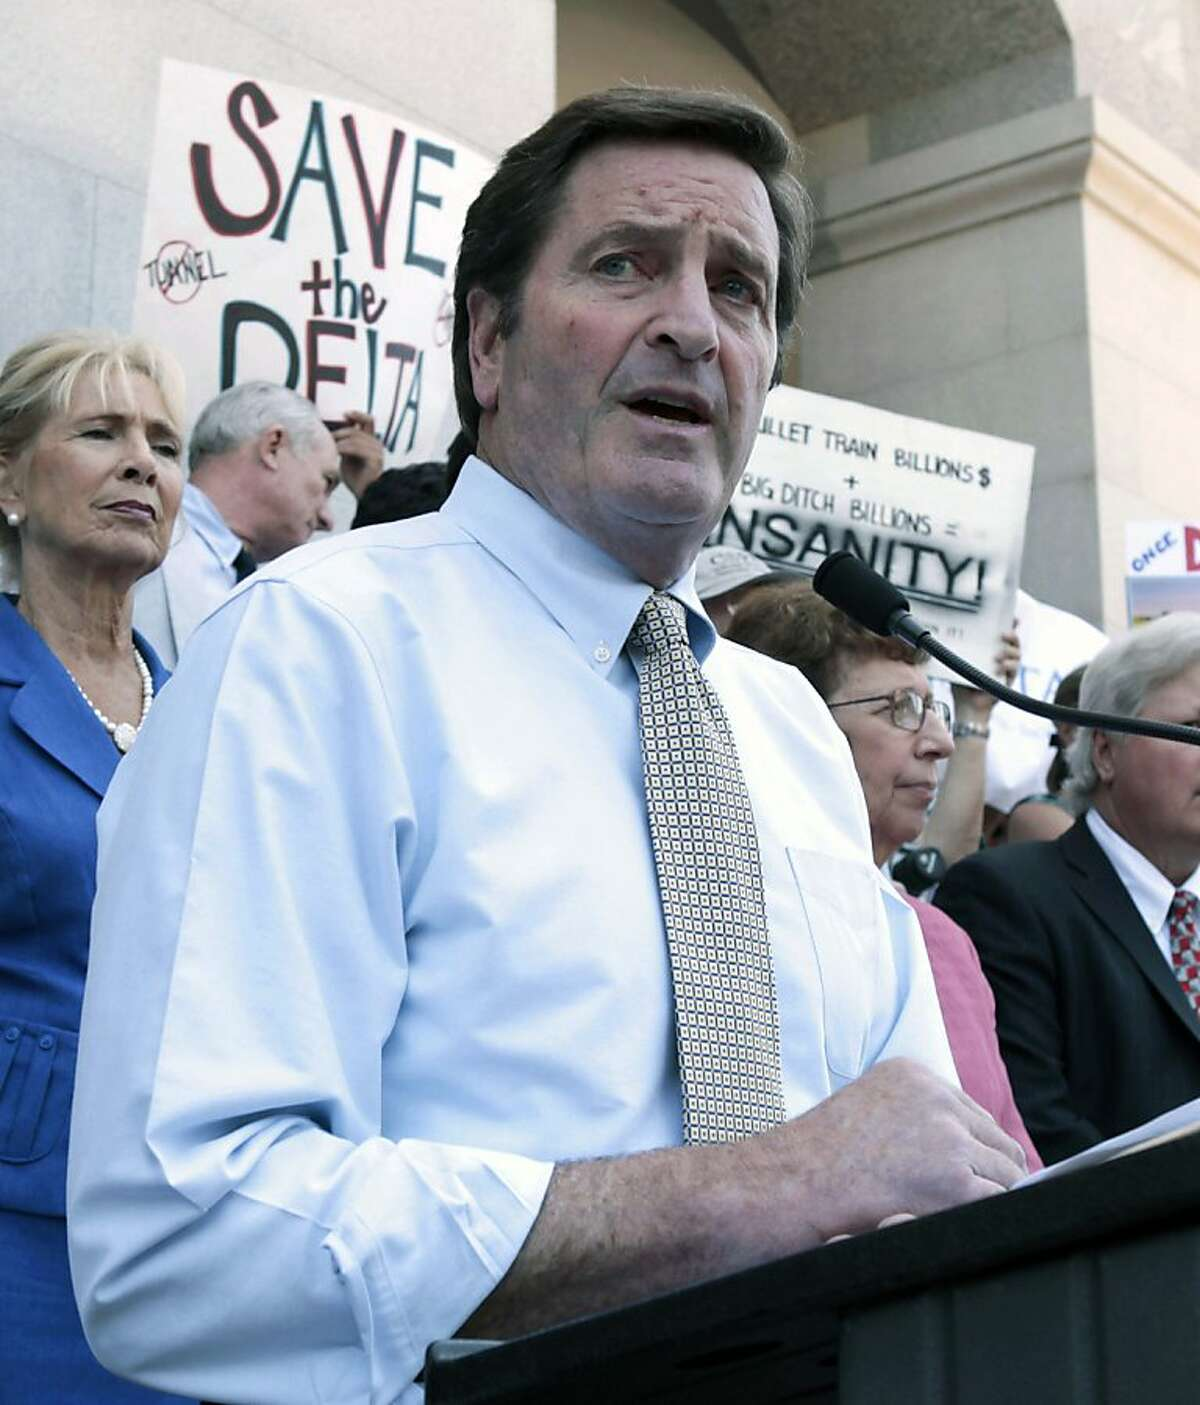 House members including John Garamendi, D-Walnut Grove (Sacramento County), won hard-fought races last year in districts with significant rural and GOPrepresentation.